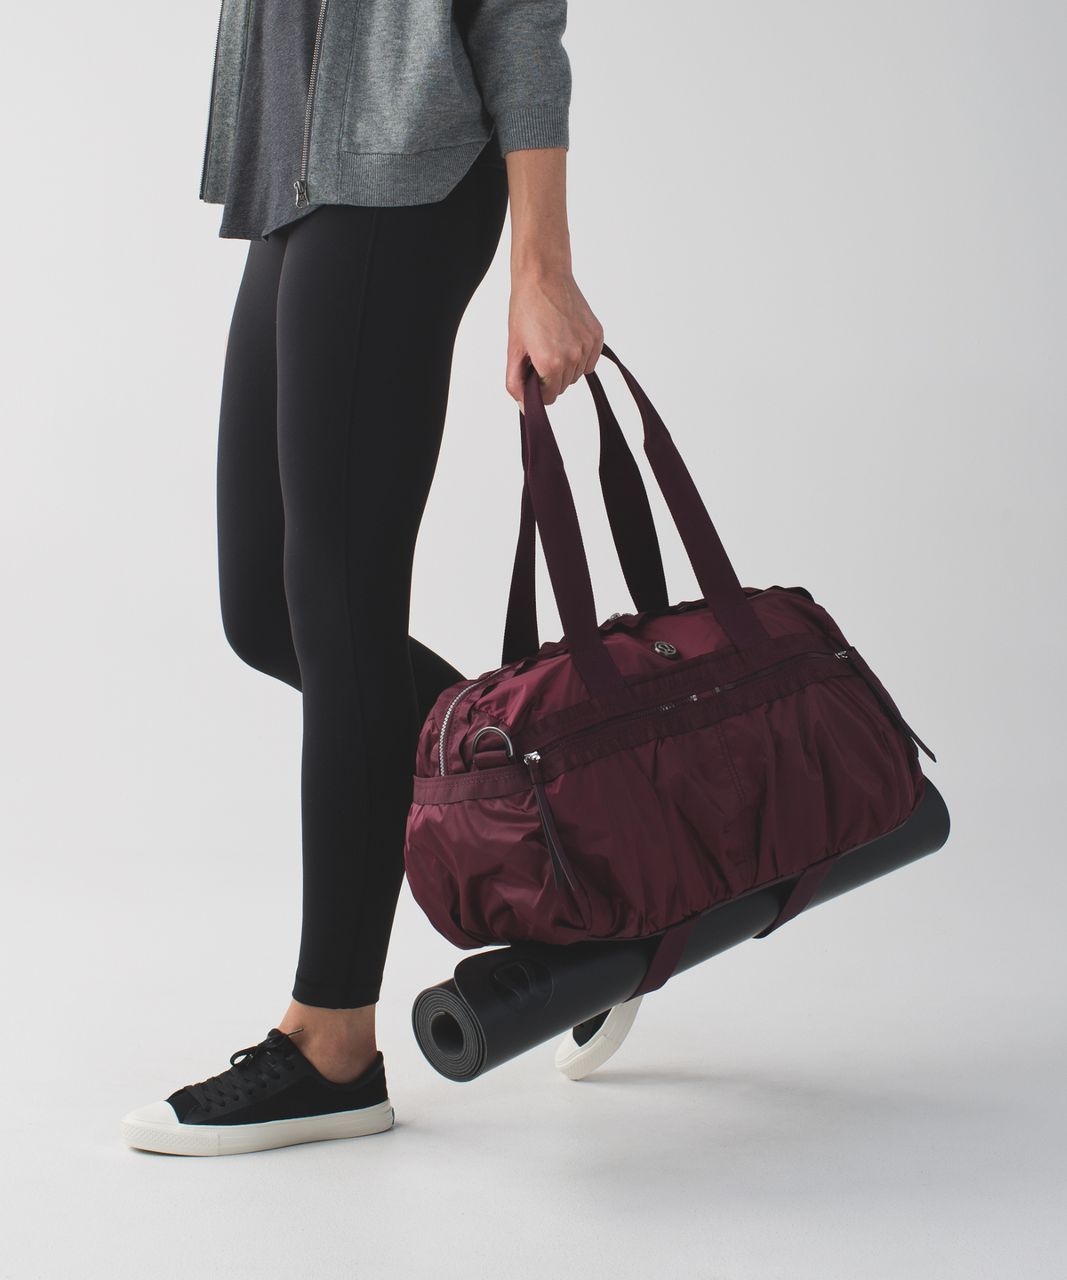 a84f70fce85 Lululemon Gym To Win Duffel - Wine Berry / Bordeaux Drama - lulu ...